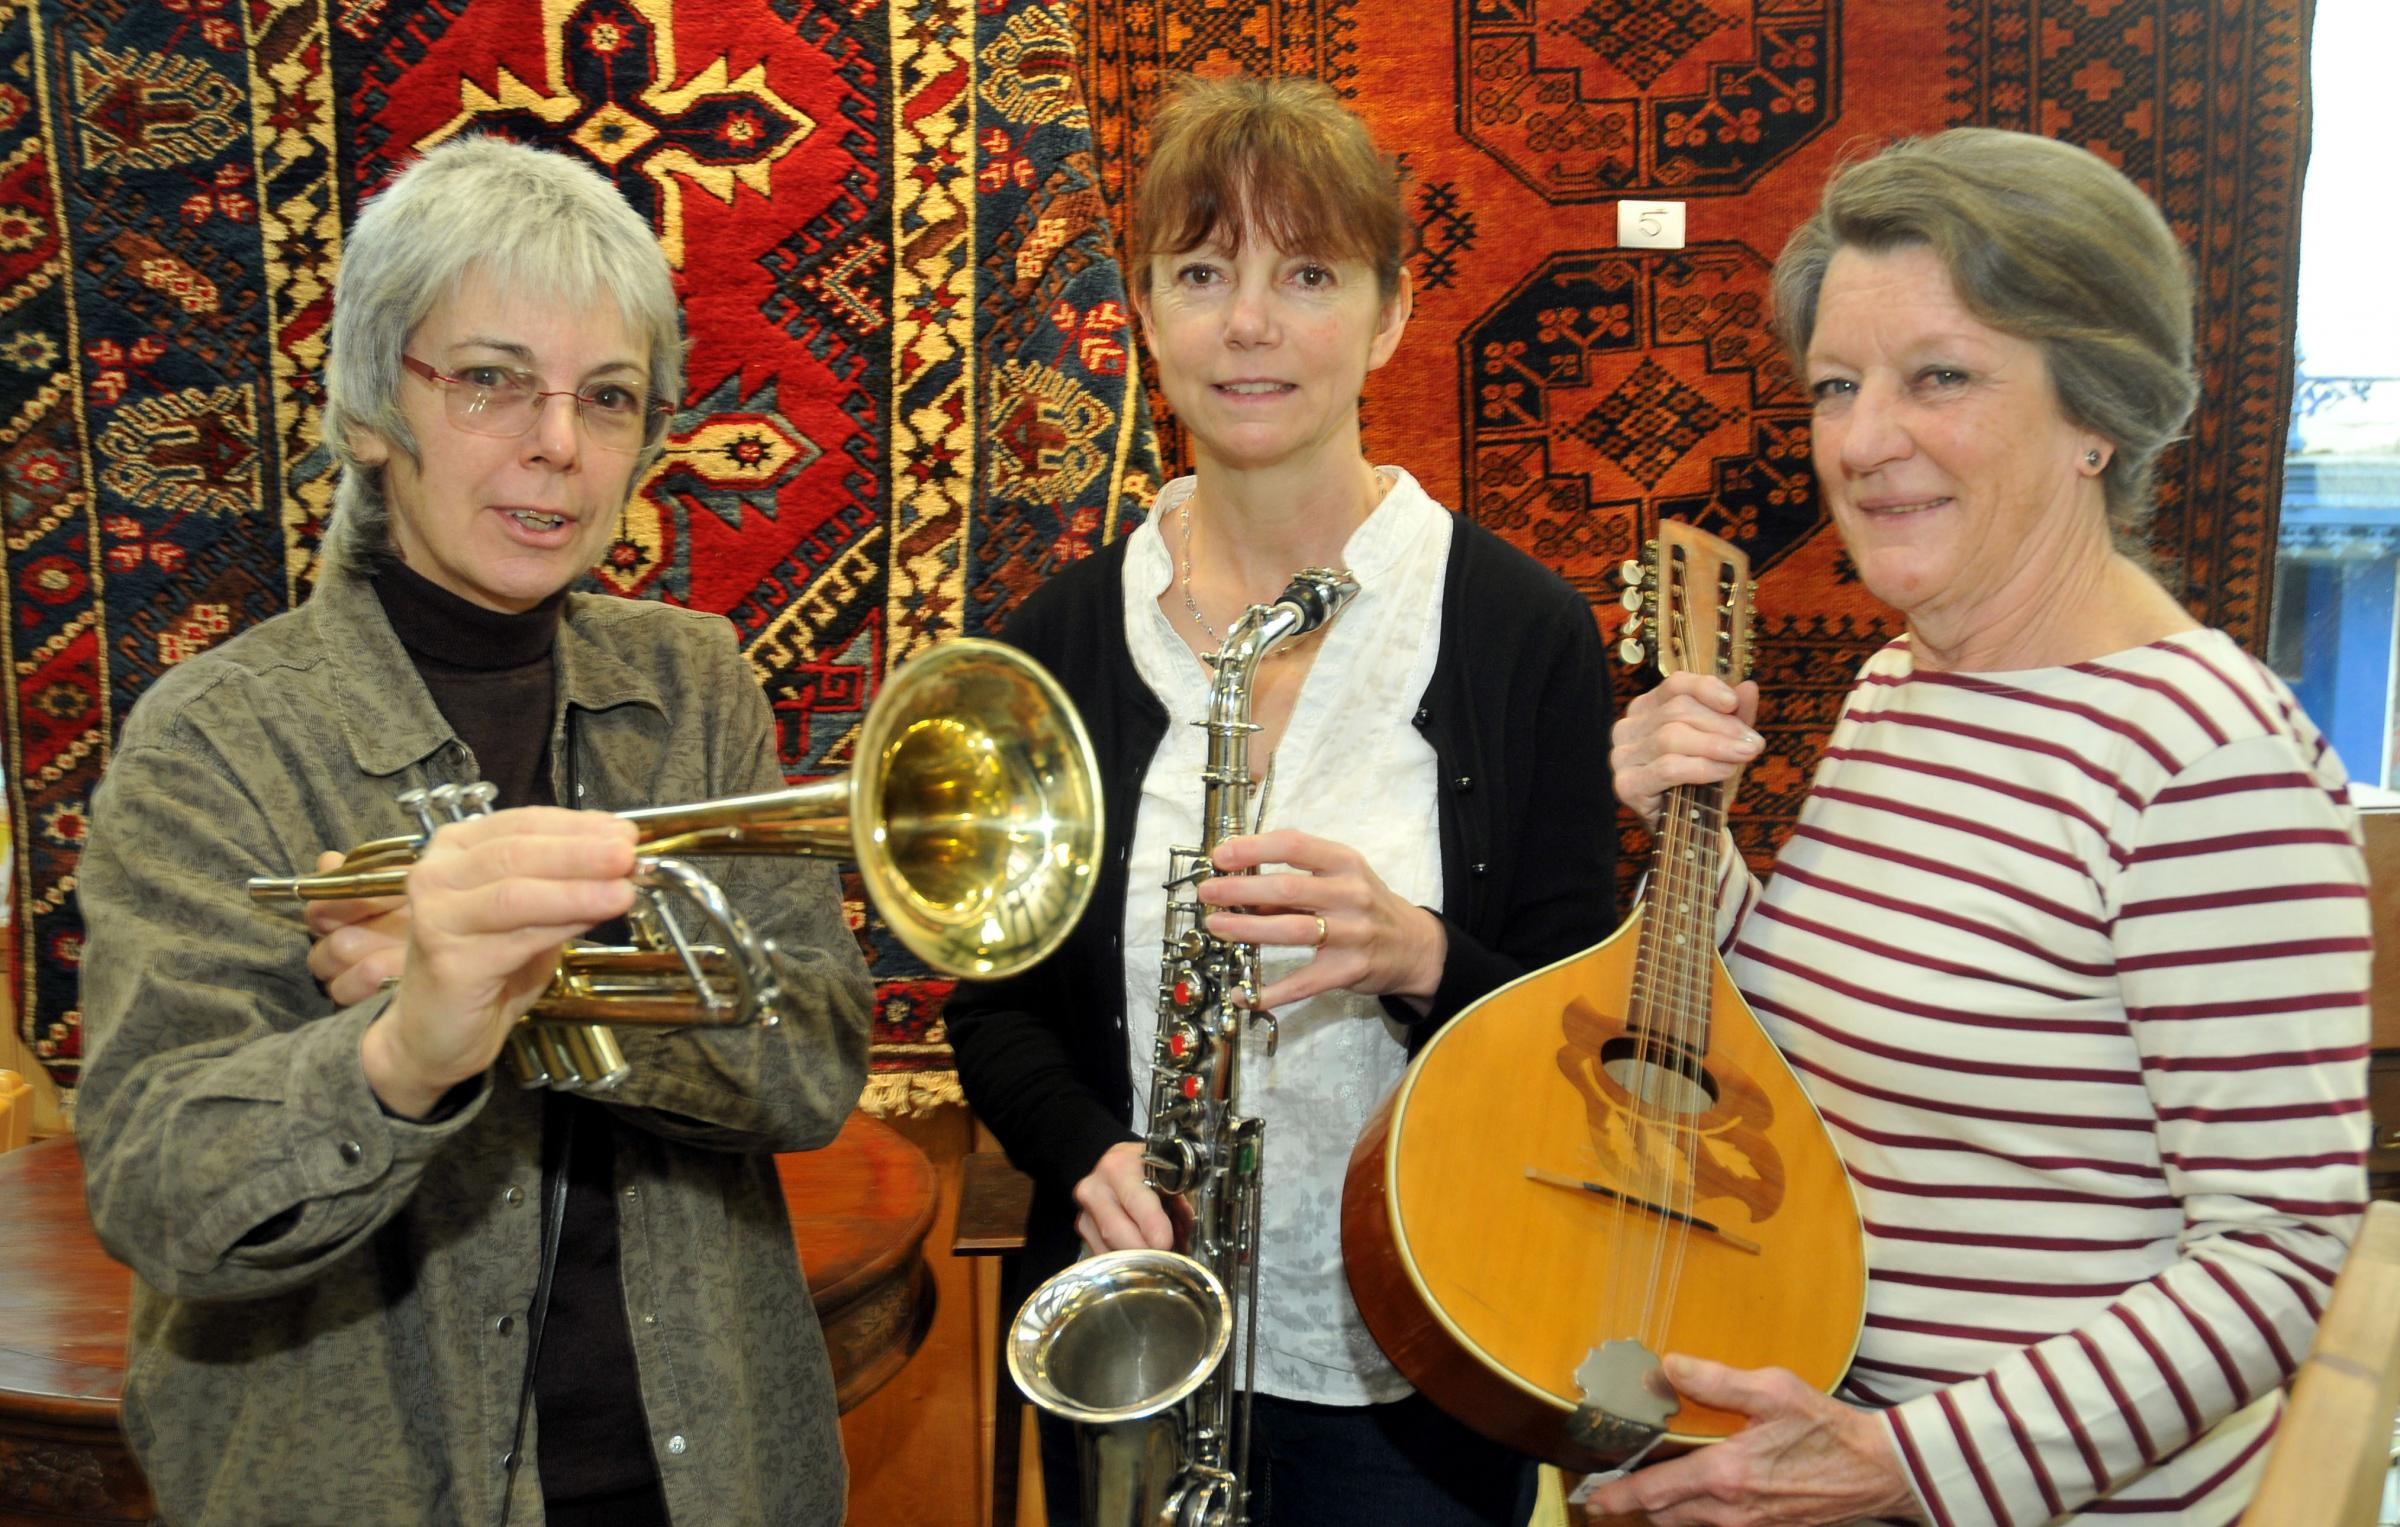 Community auction at Bishops Castle Town hall. With some of the musical items to go under the hammer are from left Town Hall Trustee Evelyn Bowles, one of the town hall managers Julie Magill and volunteer Joan Waters